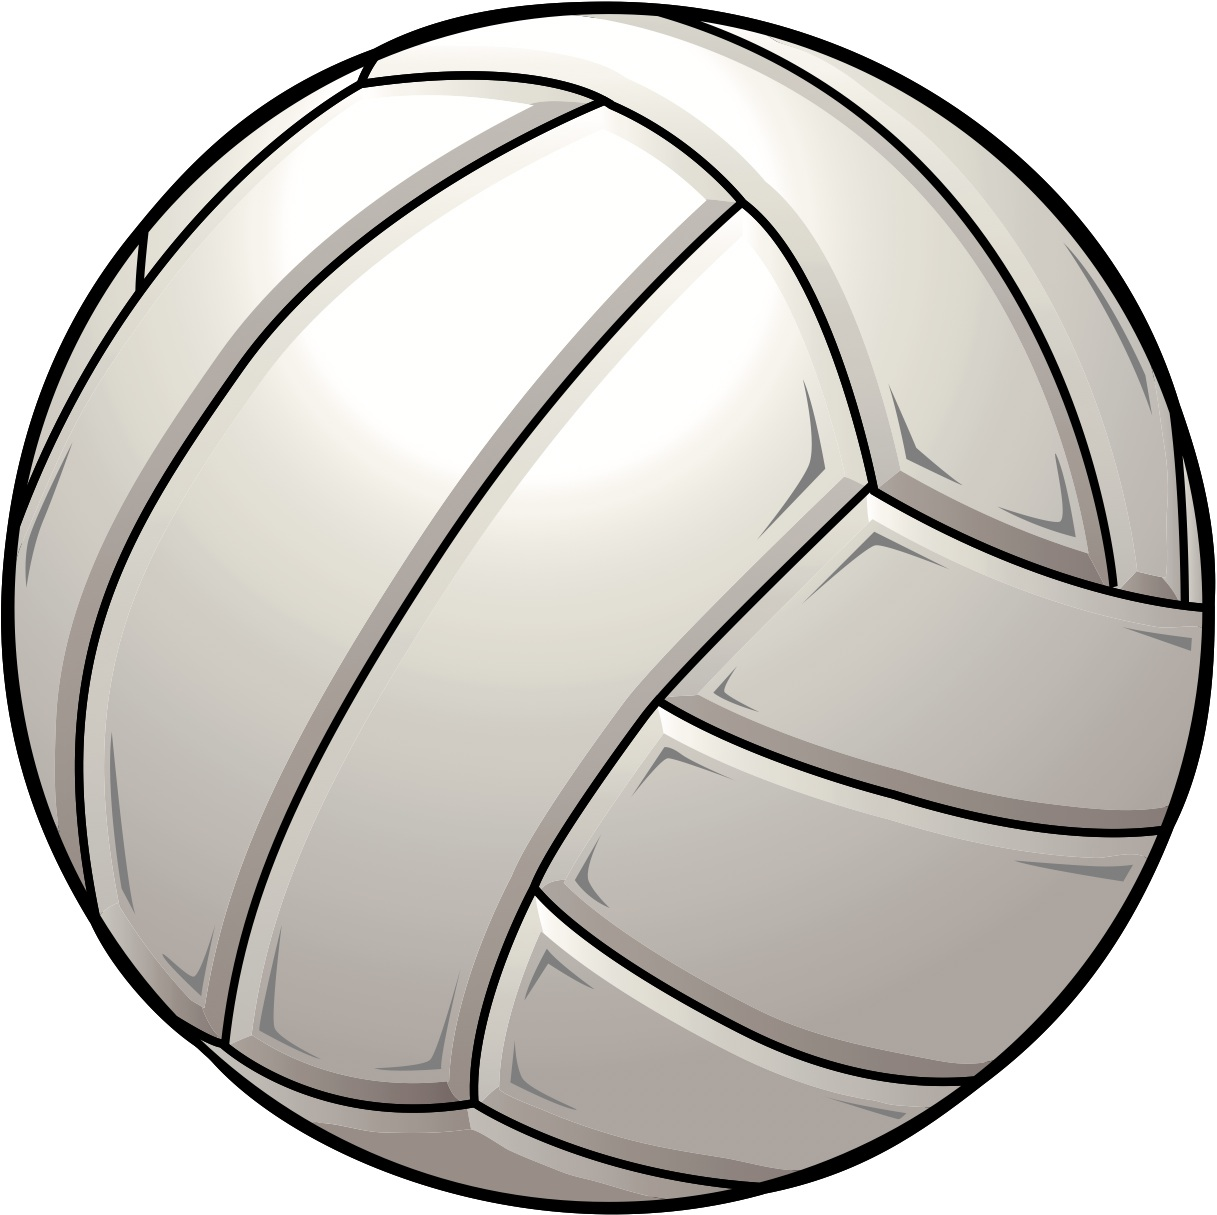 Volleyball ball clip art.